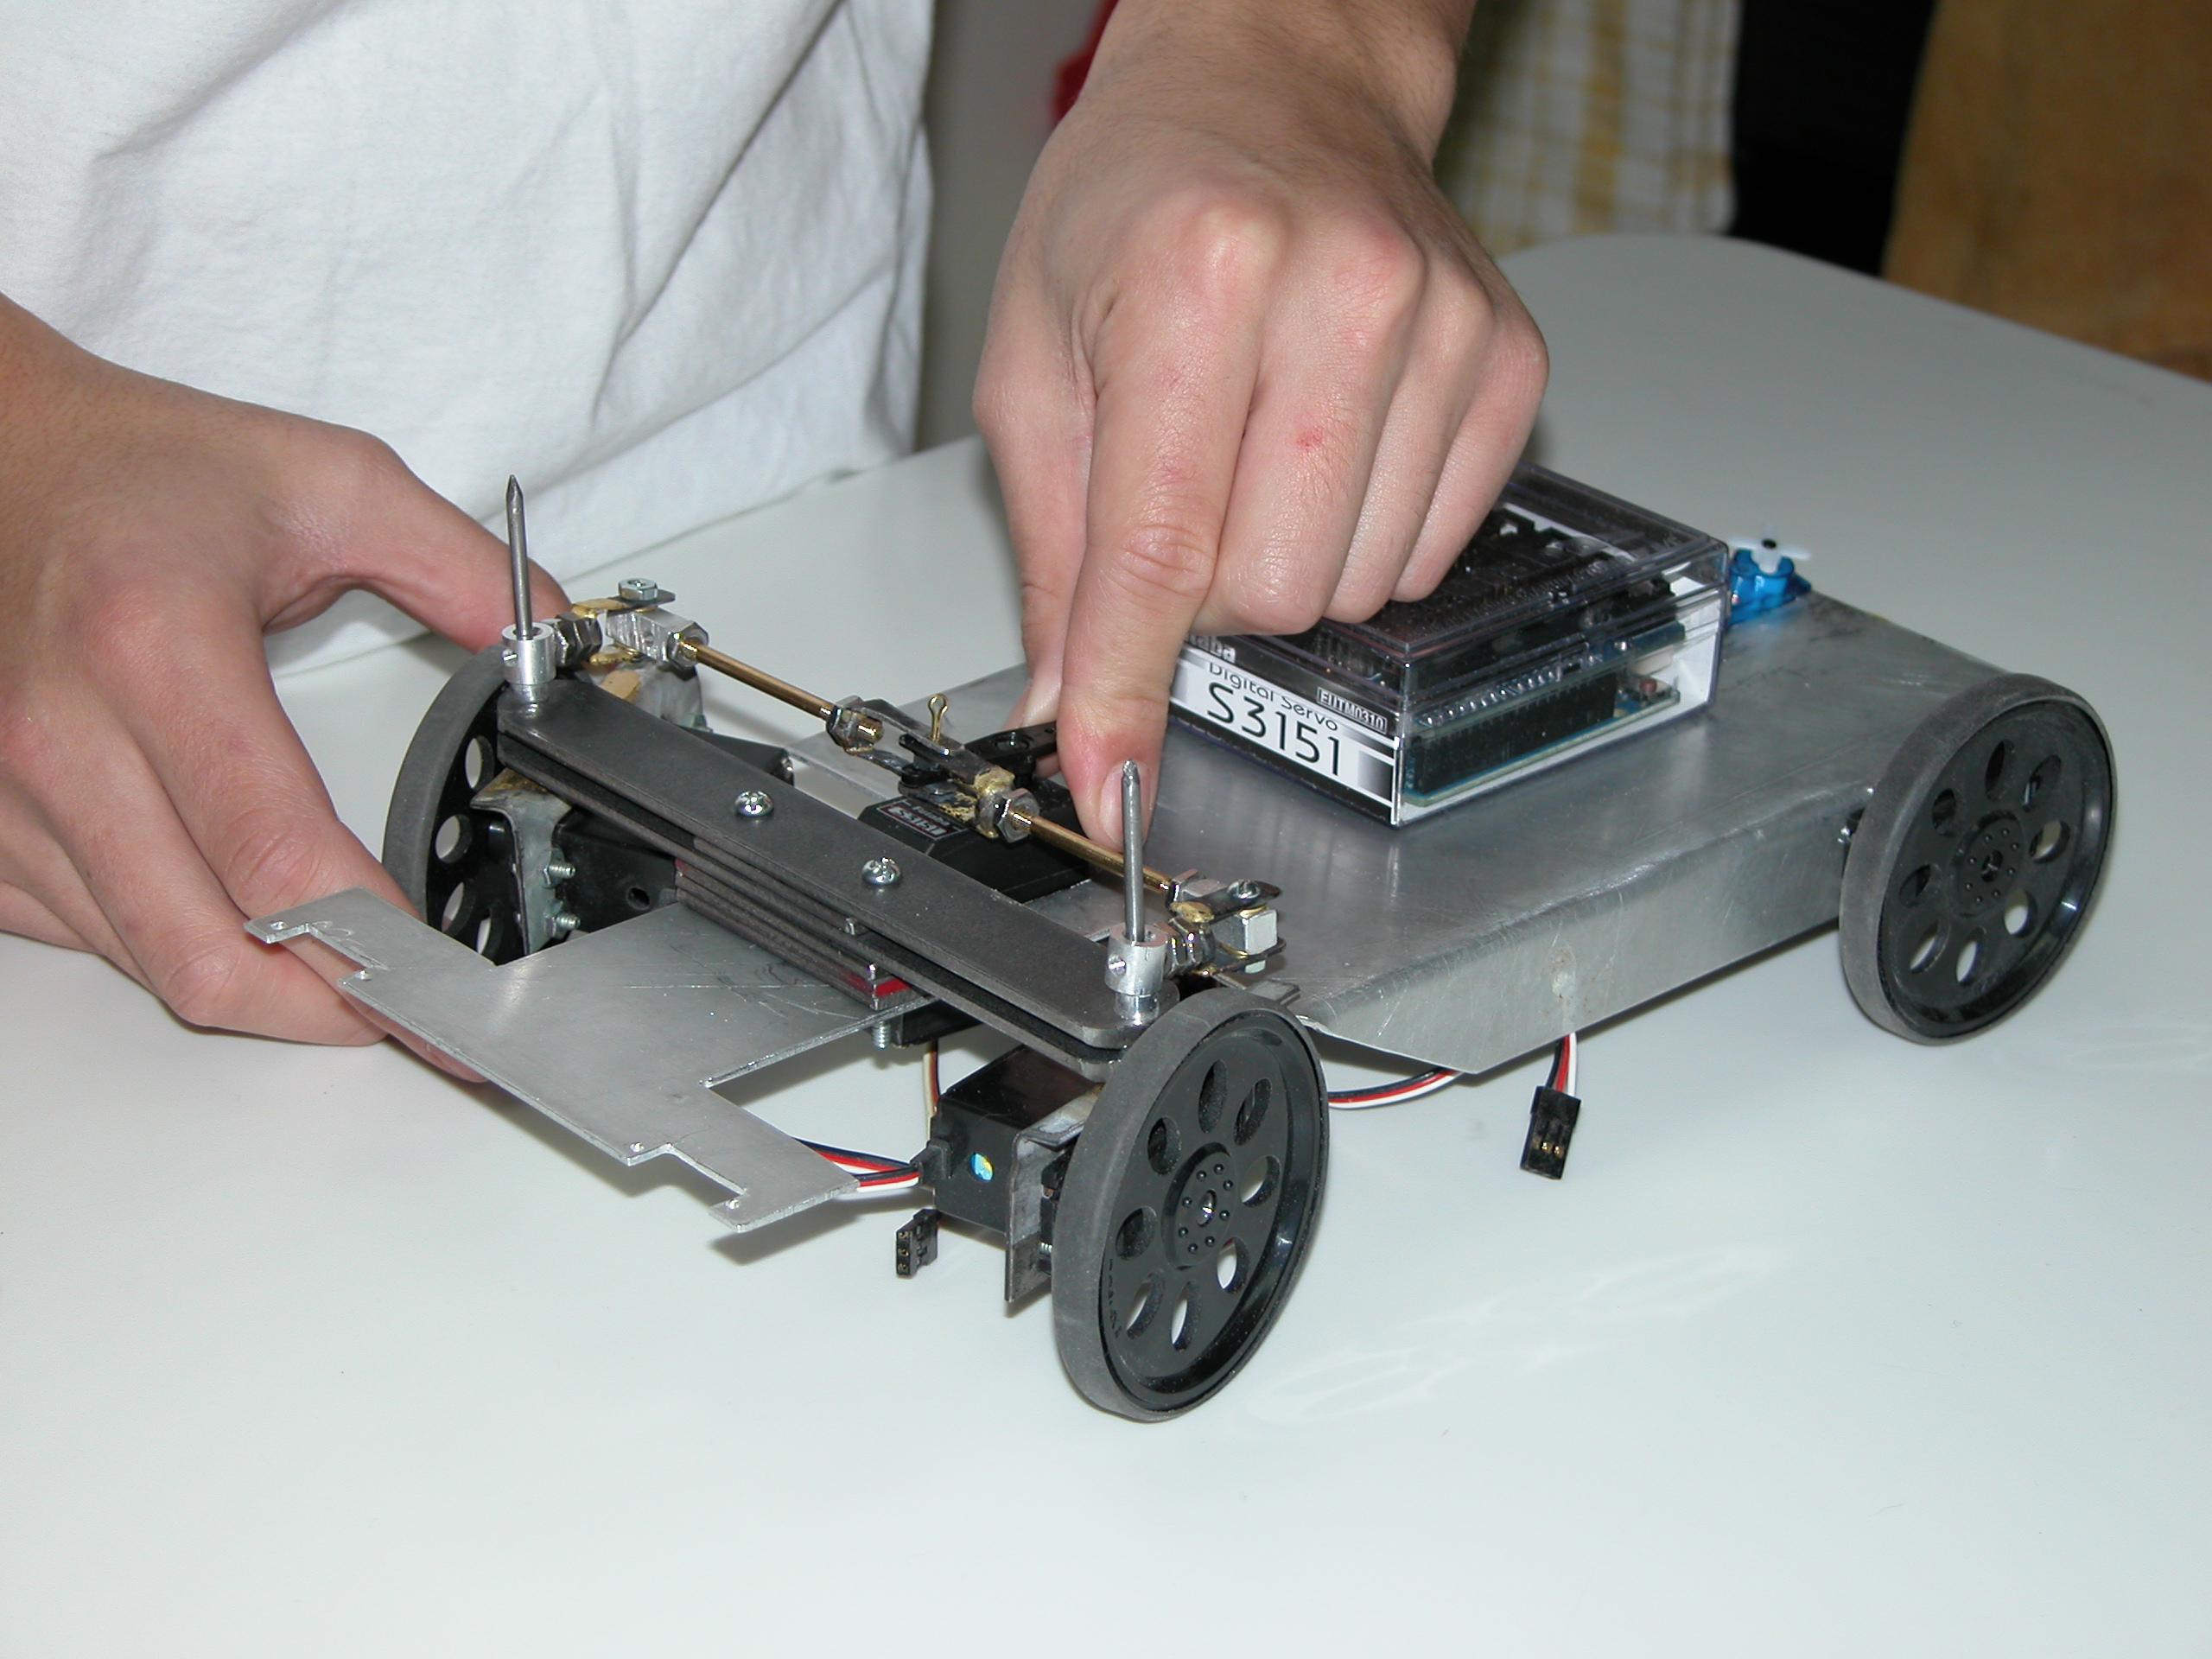 Picture of Assembling the Robot